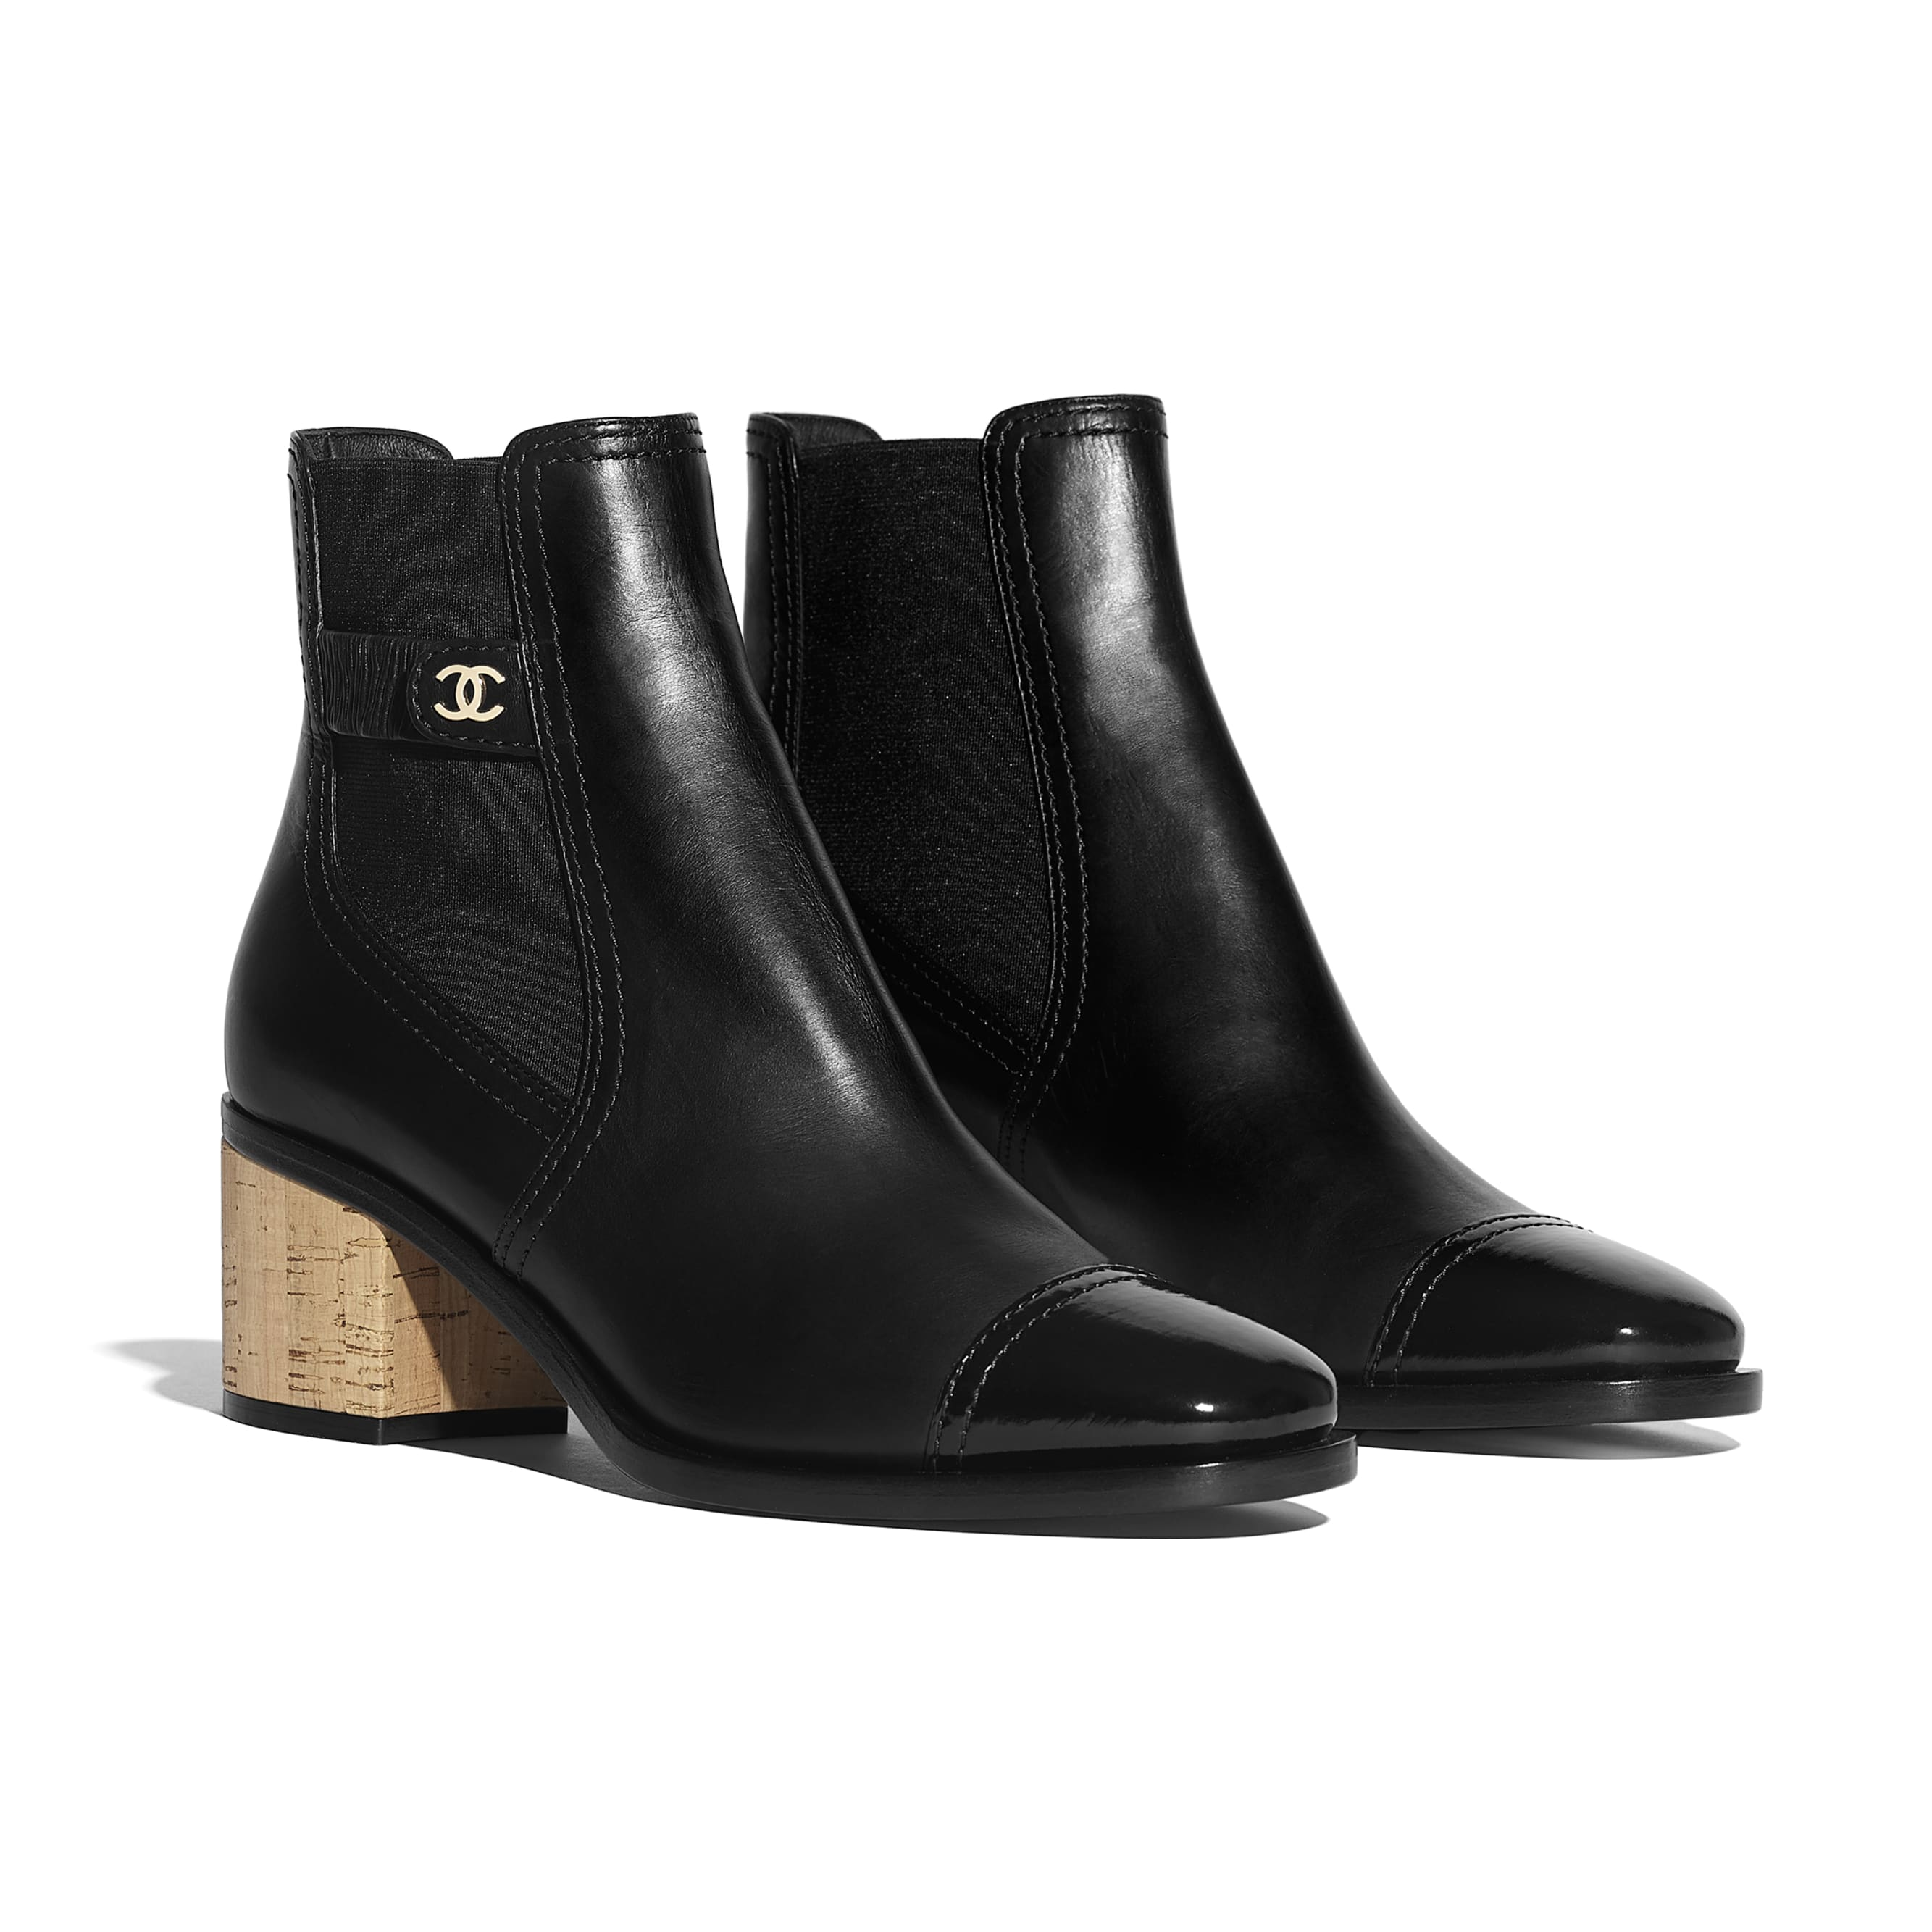 Ankle Boots - Black - Calfskin, Patent Calfskin & Cork - Alternative view - see standard sized version